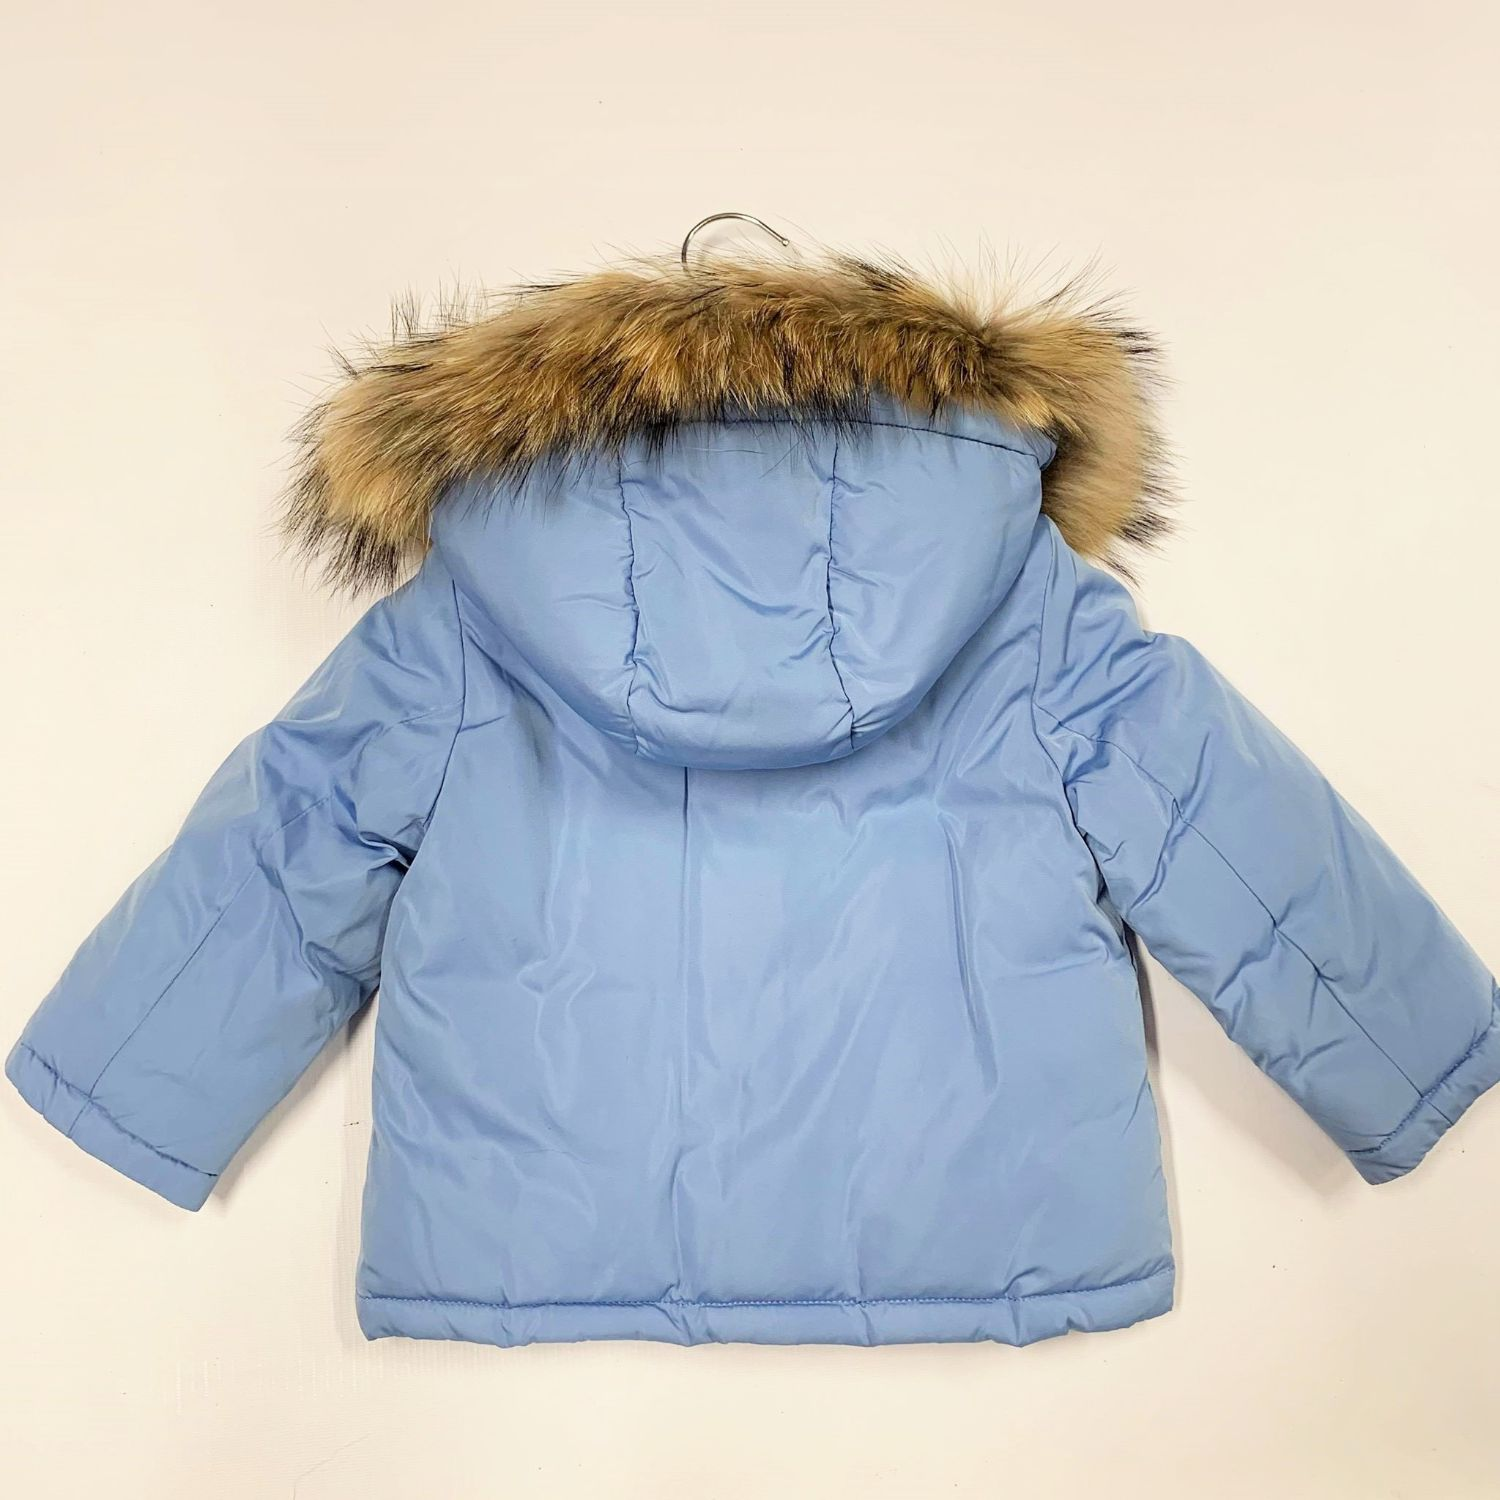 TREAPI & BABY A DOWN FILLED JACKET WITH DETACHABLE FUR TRIM & HOOD ZC81 B